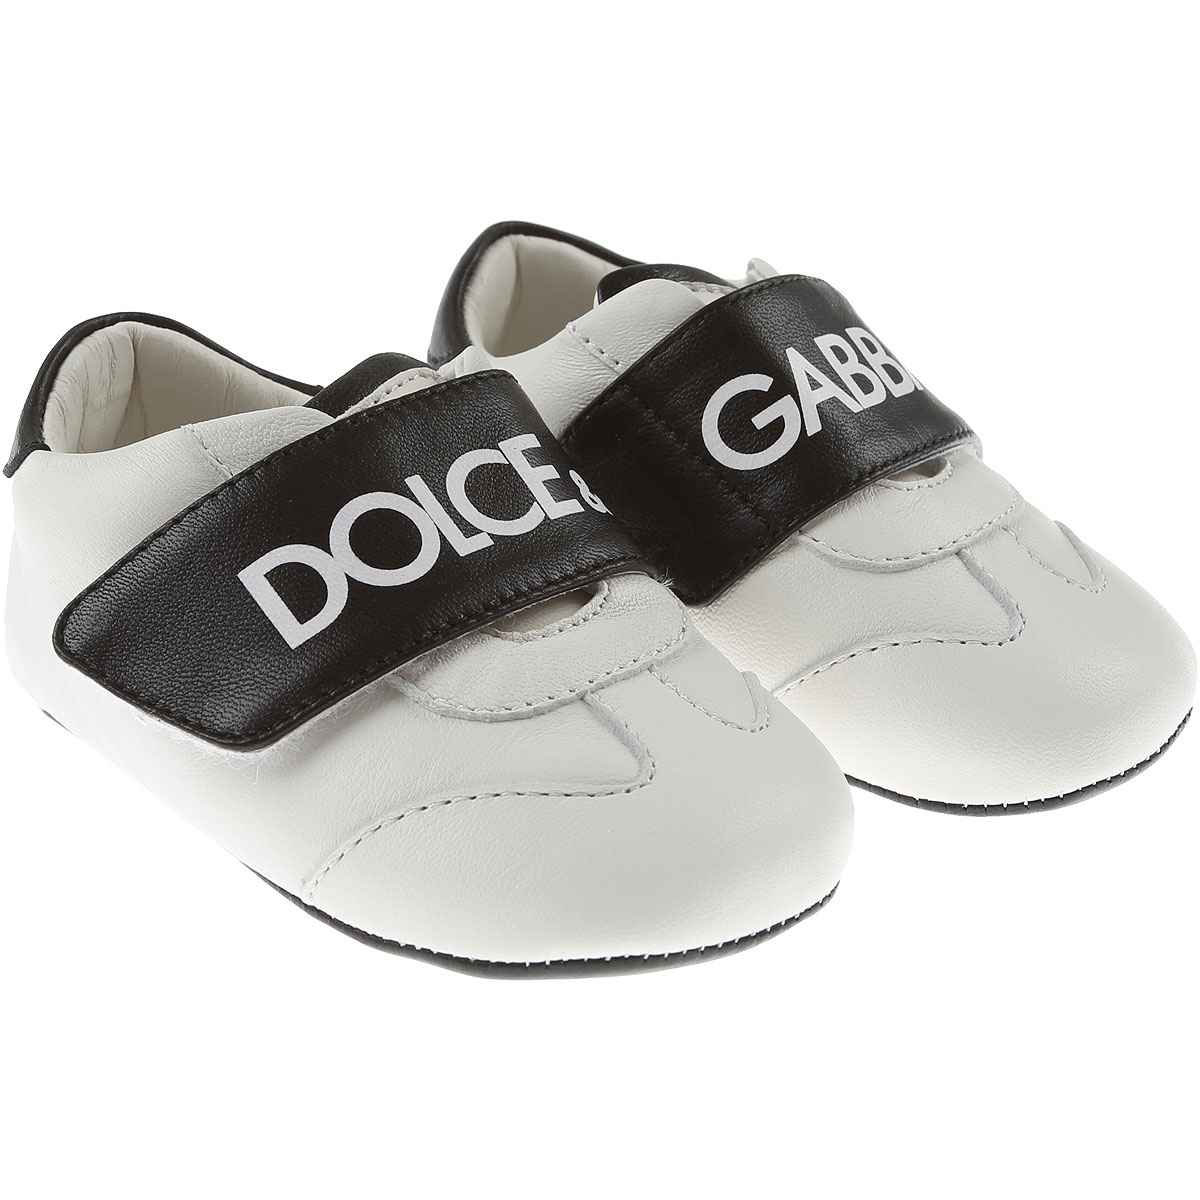 Dolce & Gabbana Baby Shoes for Boys On Sale, White, Leather, 2019, 1C 2C 3.5C